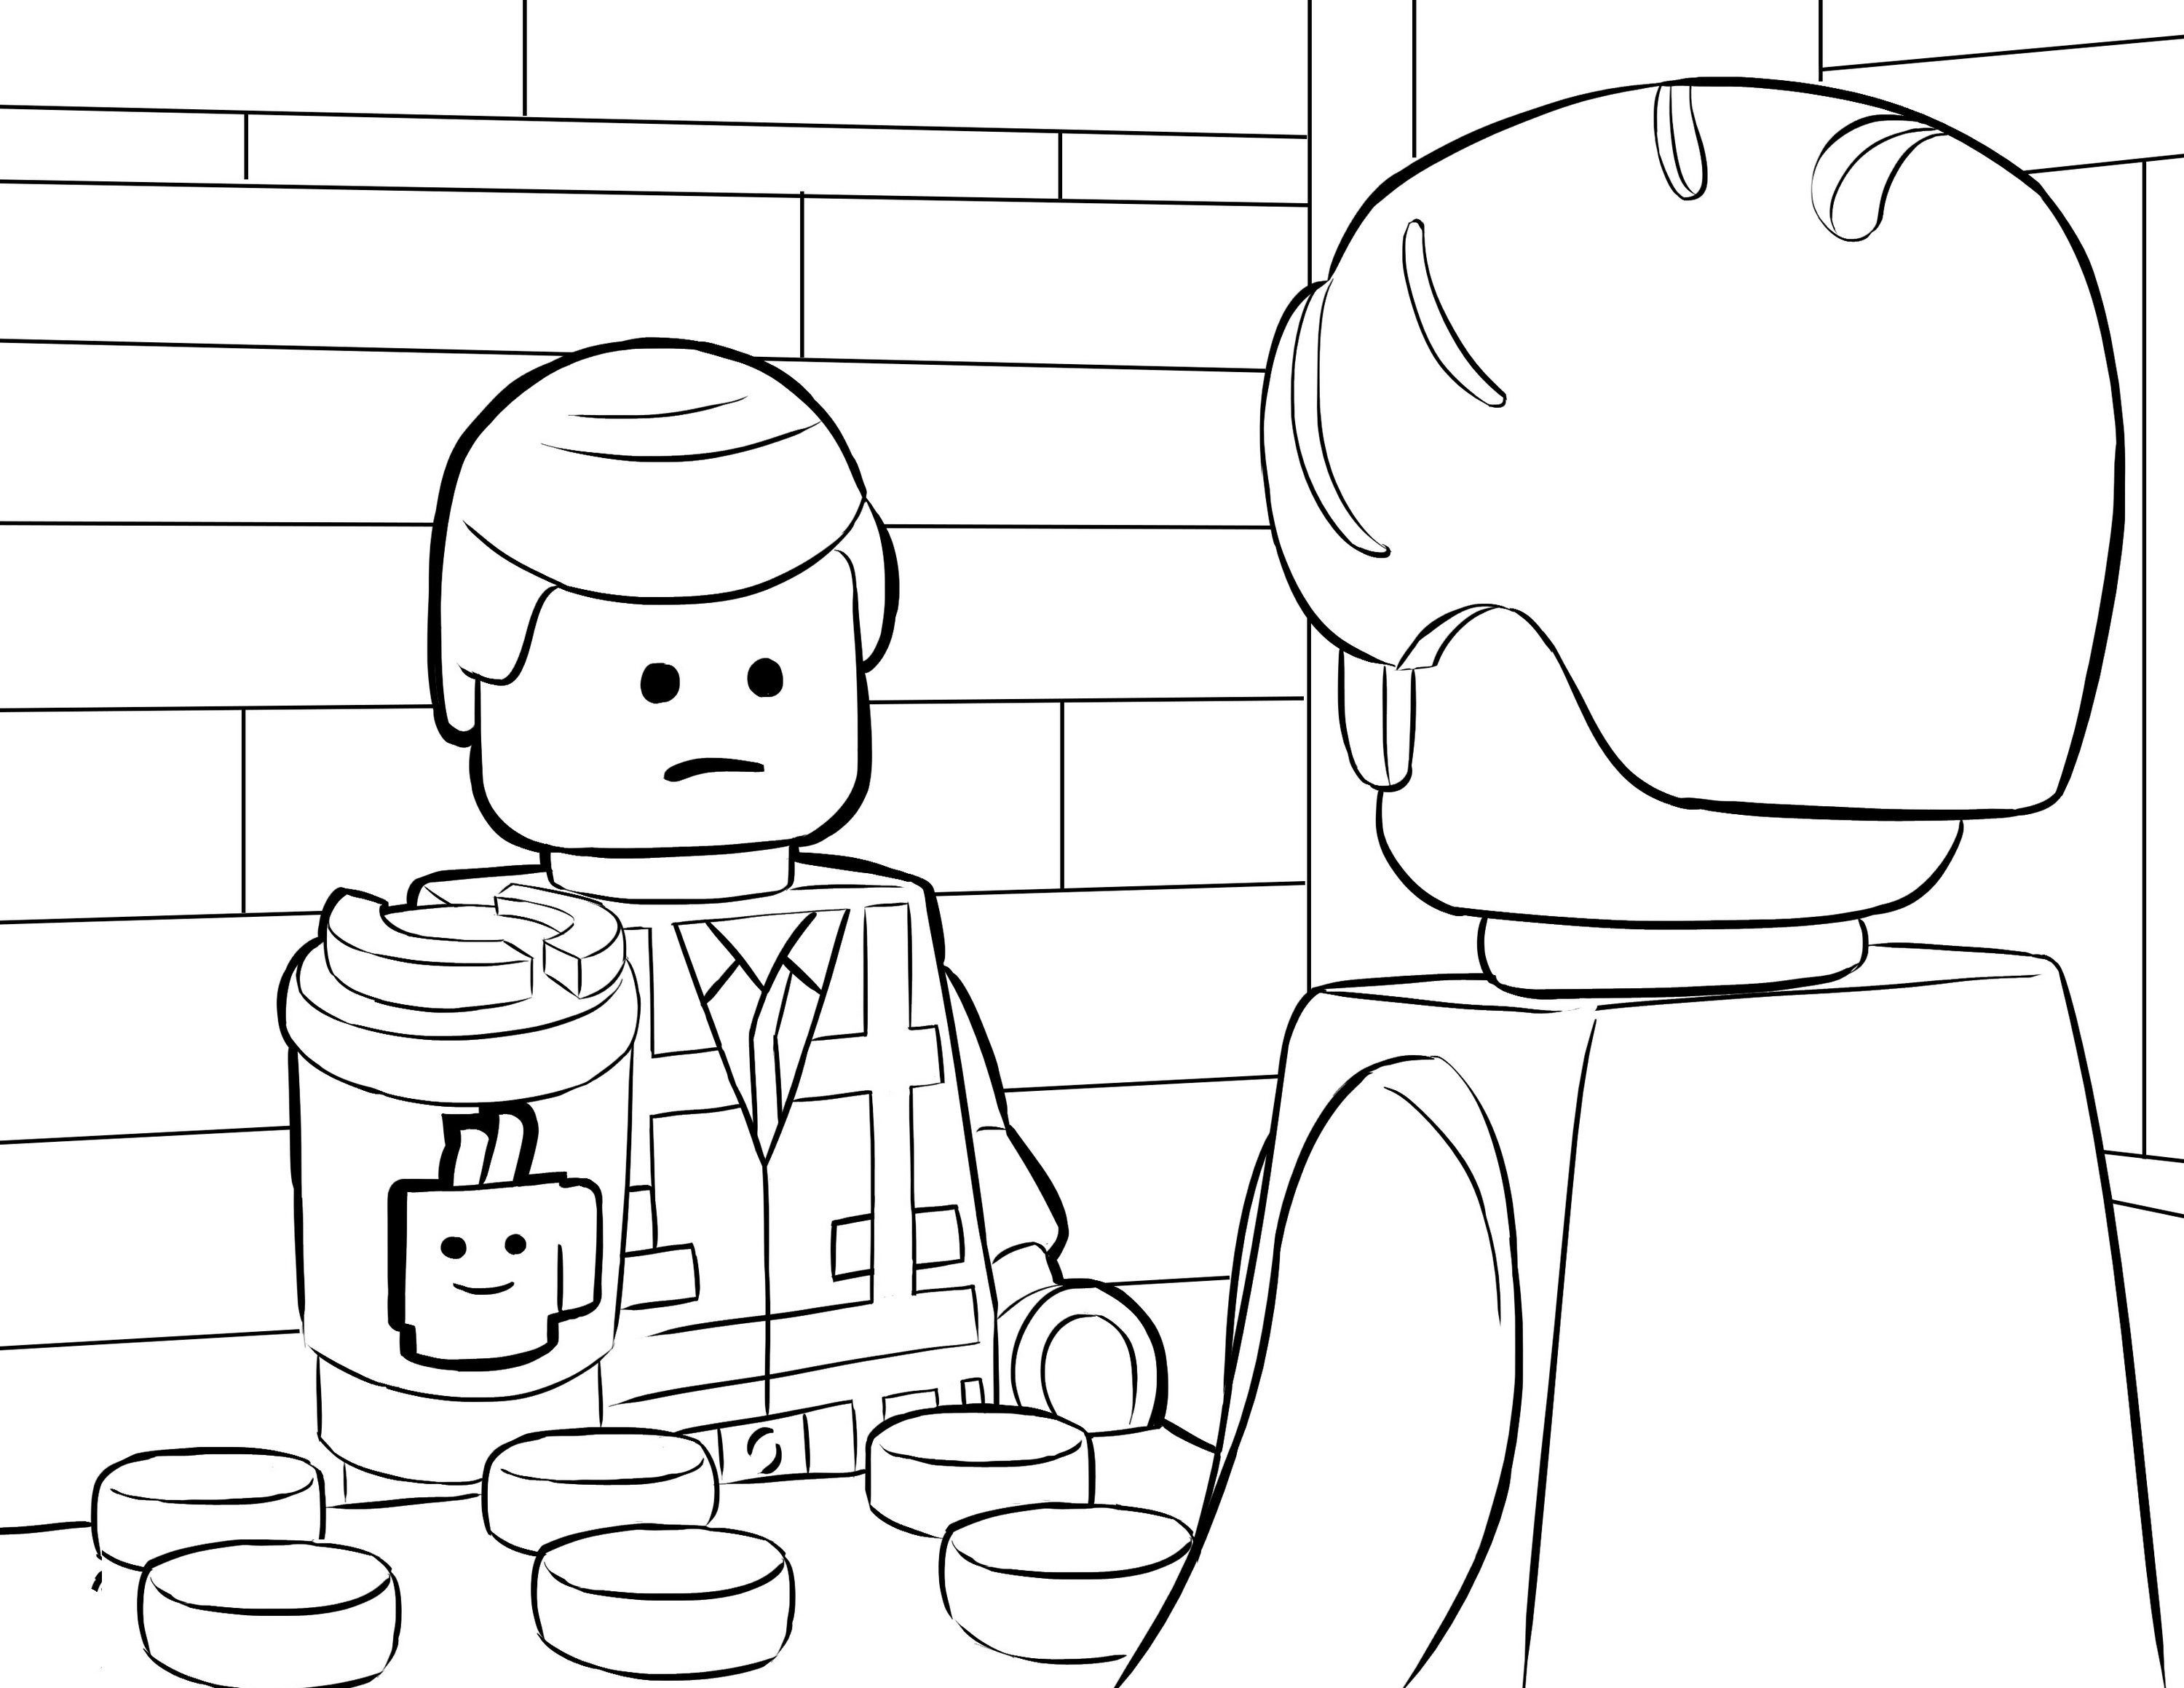 Lego movie emmet coloring page online for Lego movie coloring pages